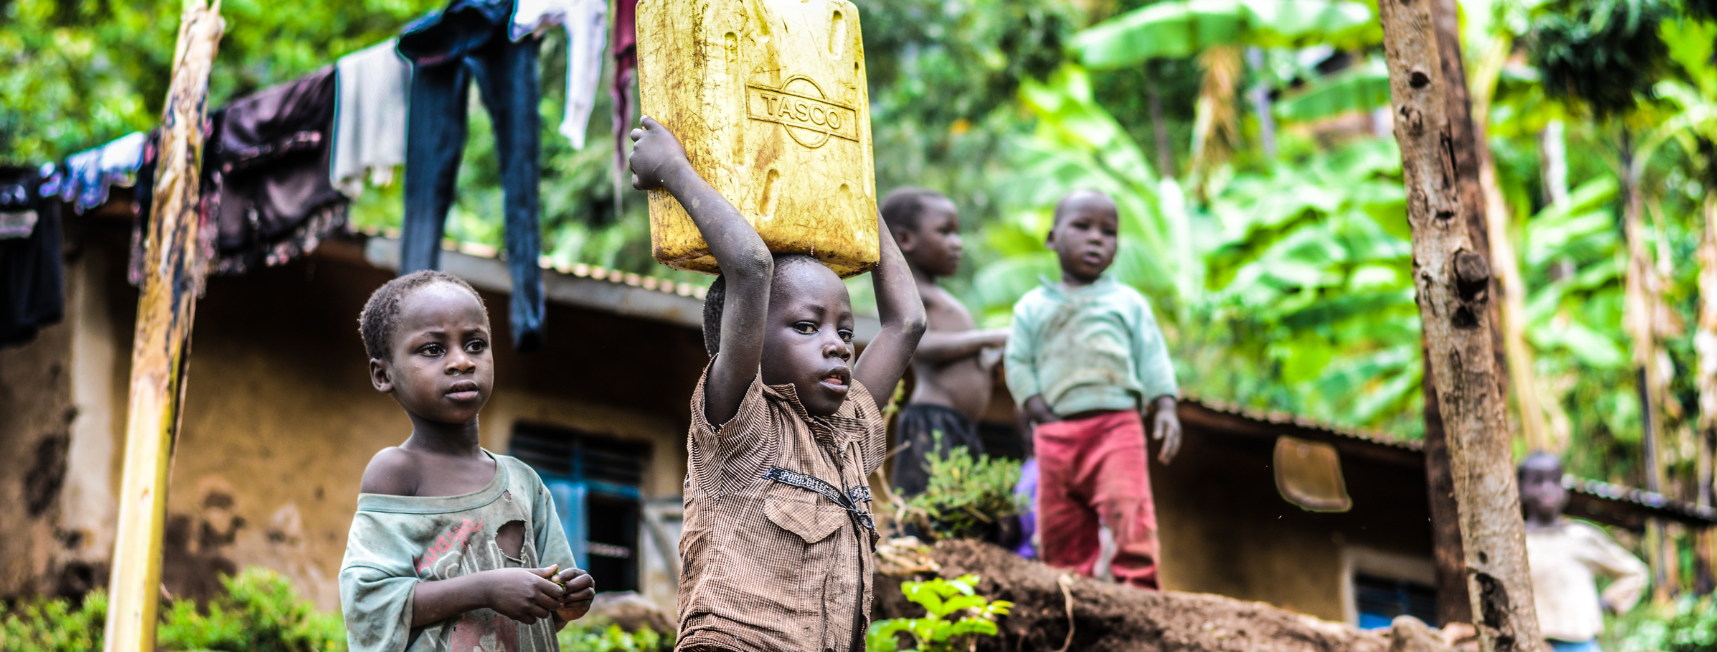 An image of a child carrying a bucket of water above their head. The child appears to live in poverty and in stood infront of a 'slum' with several friends.